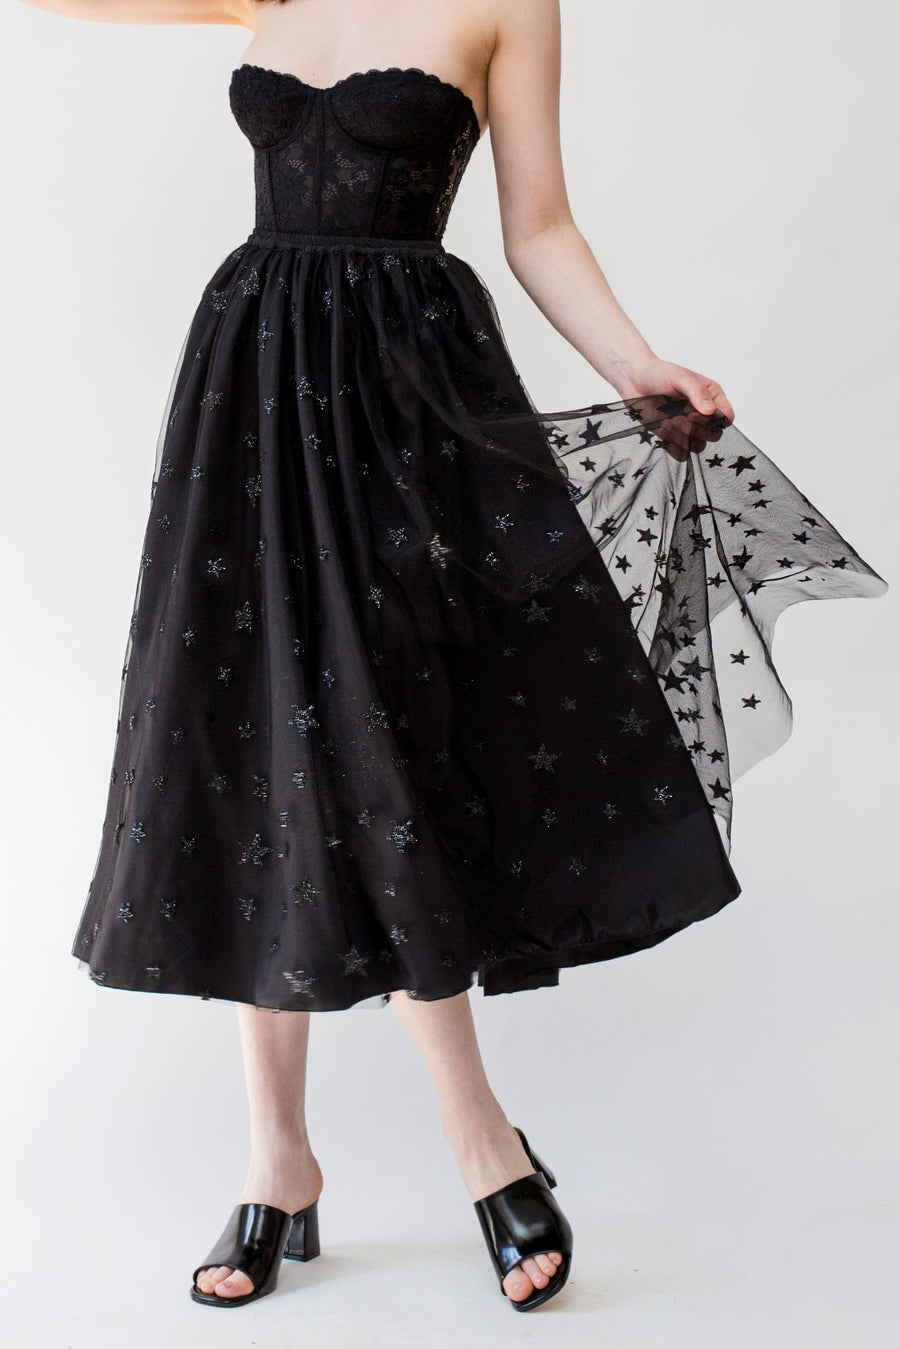 Stars in Her Eyes Skirt